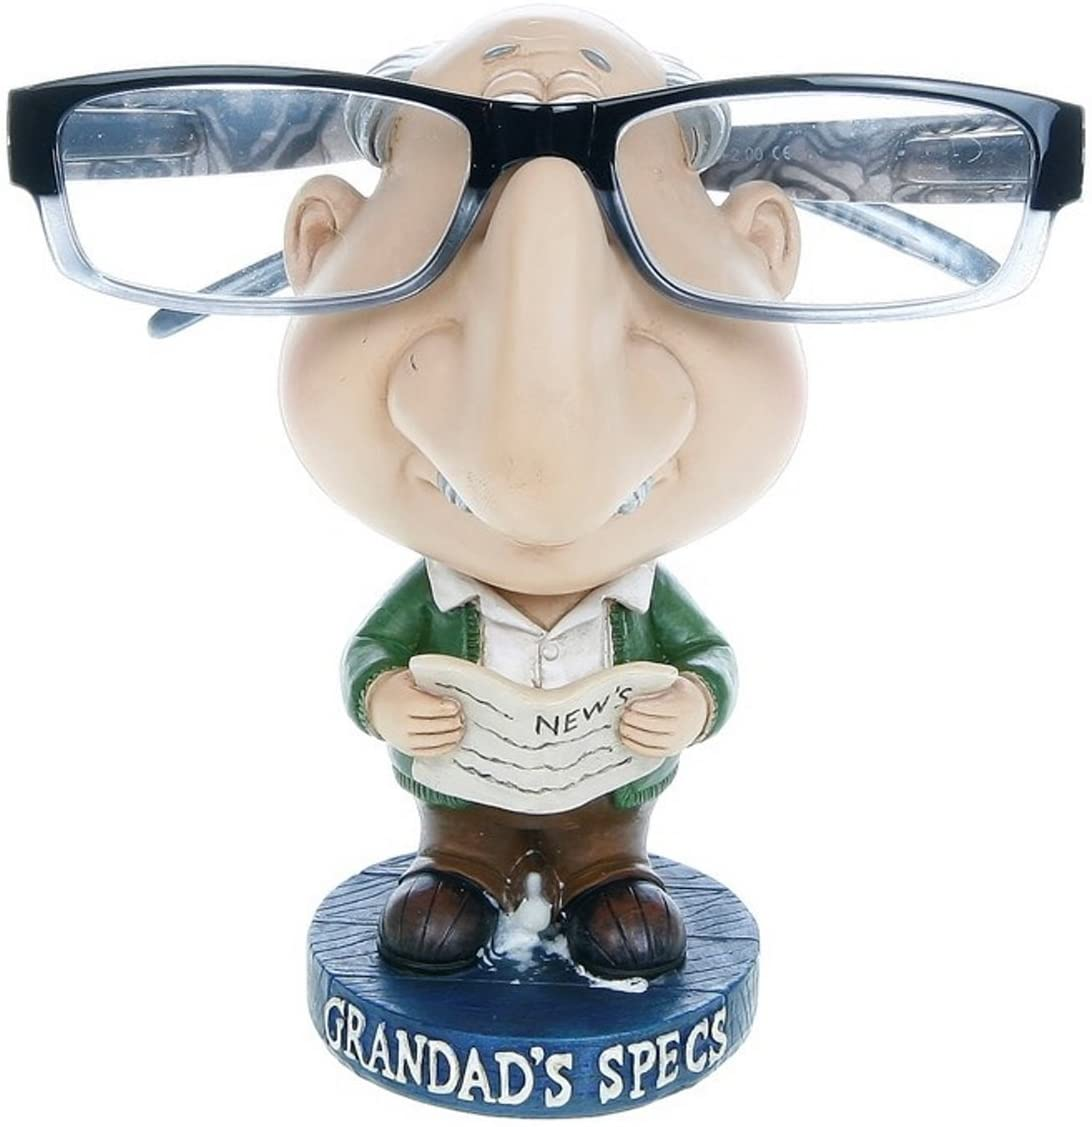 Comical Grandad Spectacles Glasses Stand